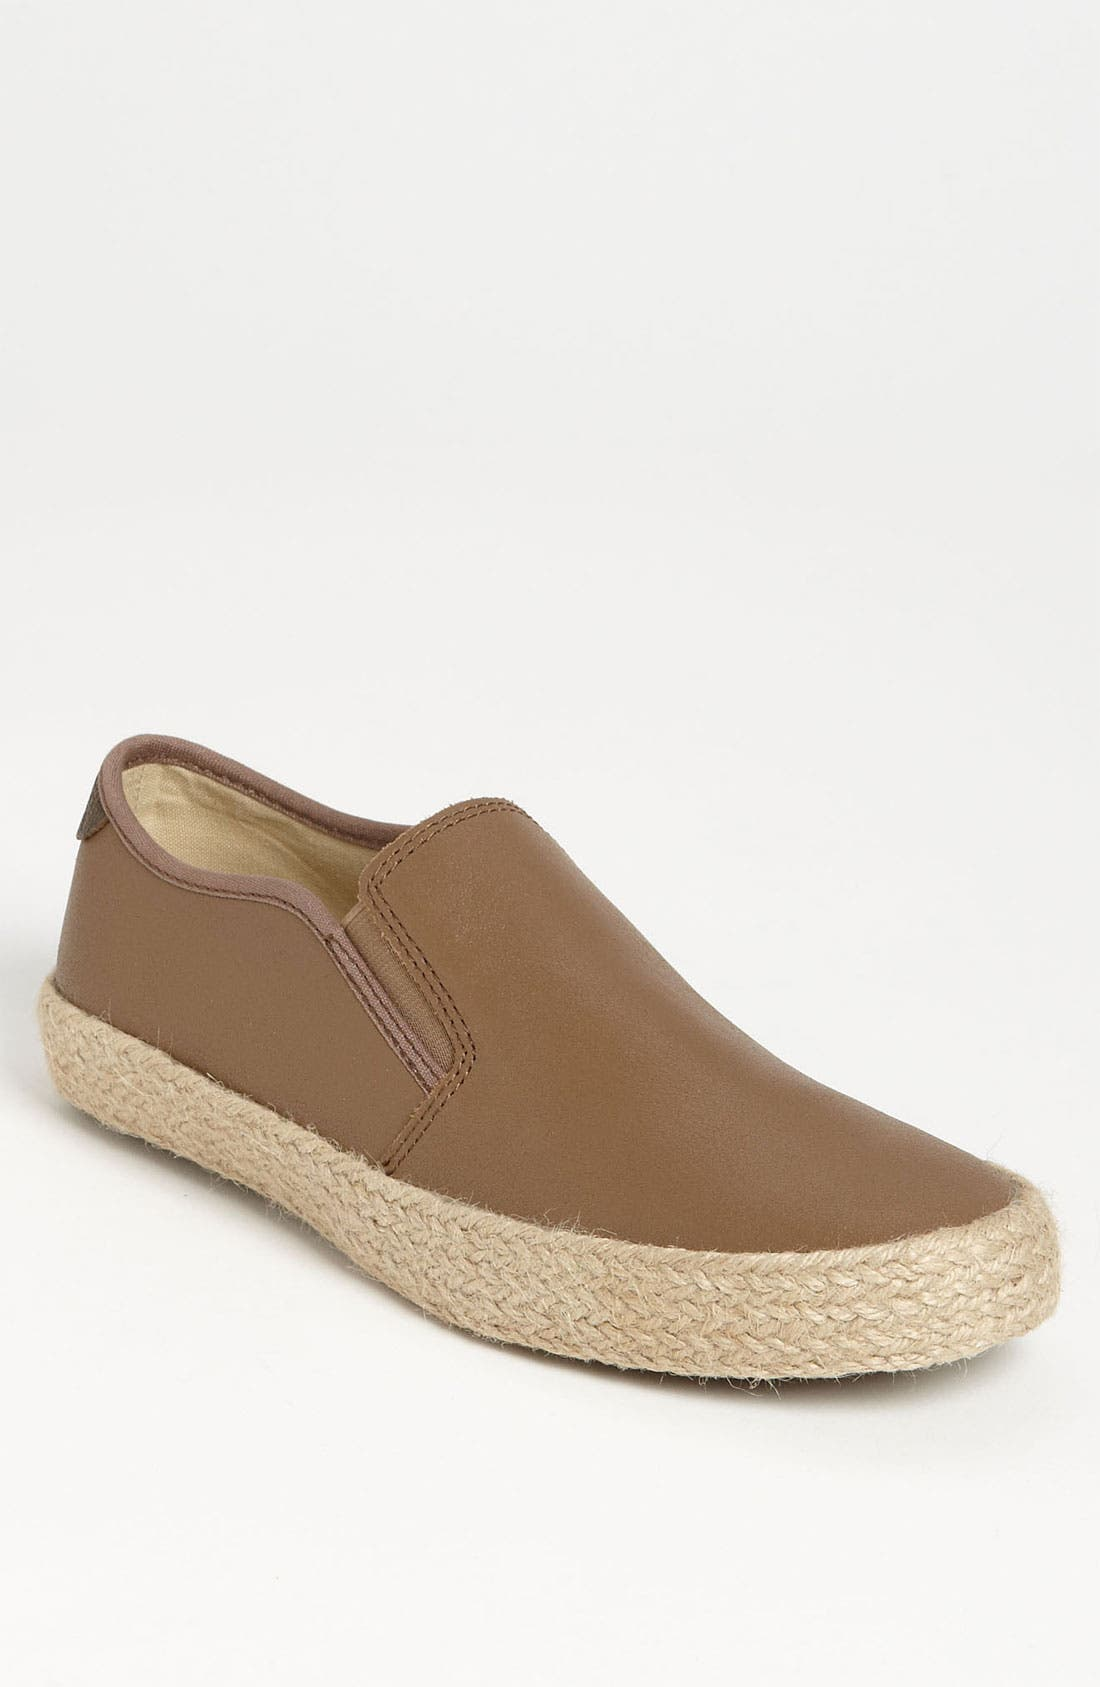 Main Image - Original Penguin 'Espy' Espadrille Slip-On